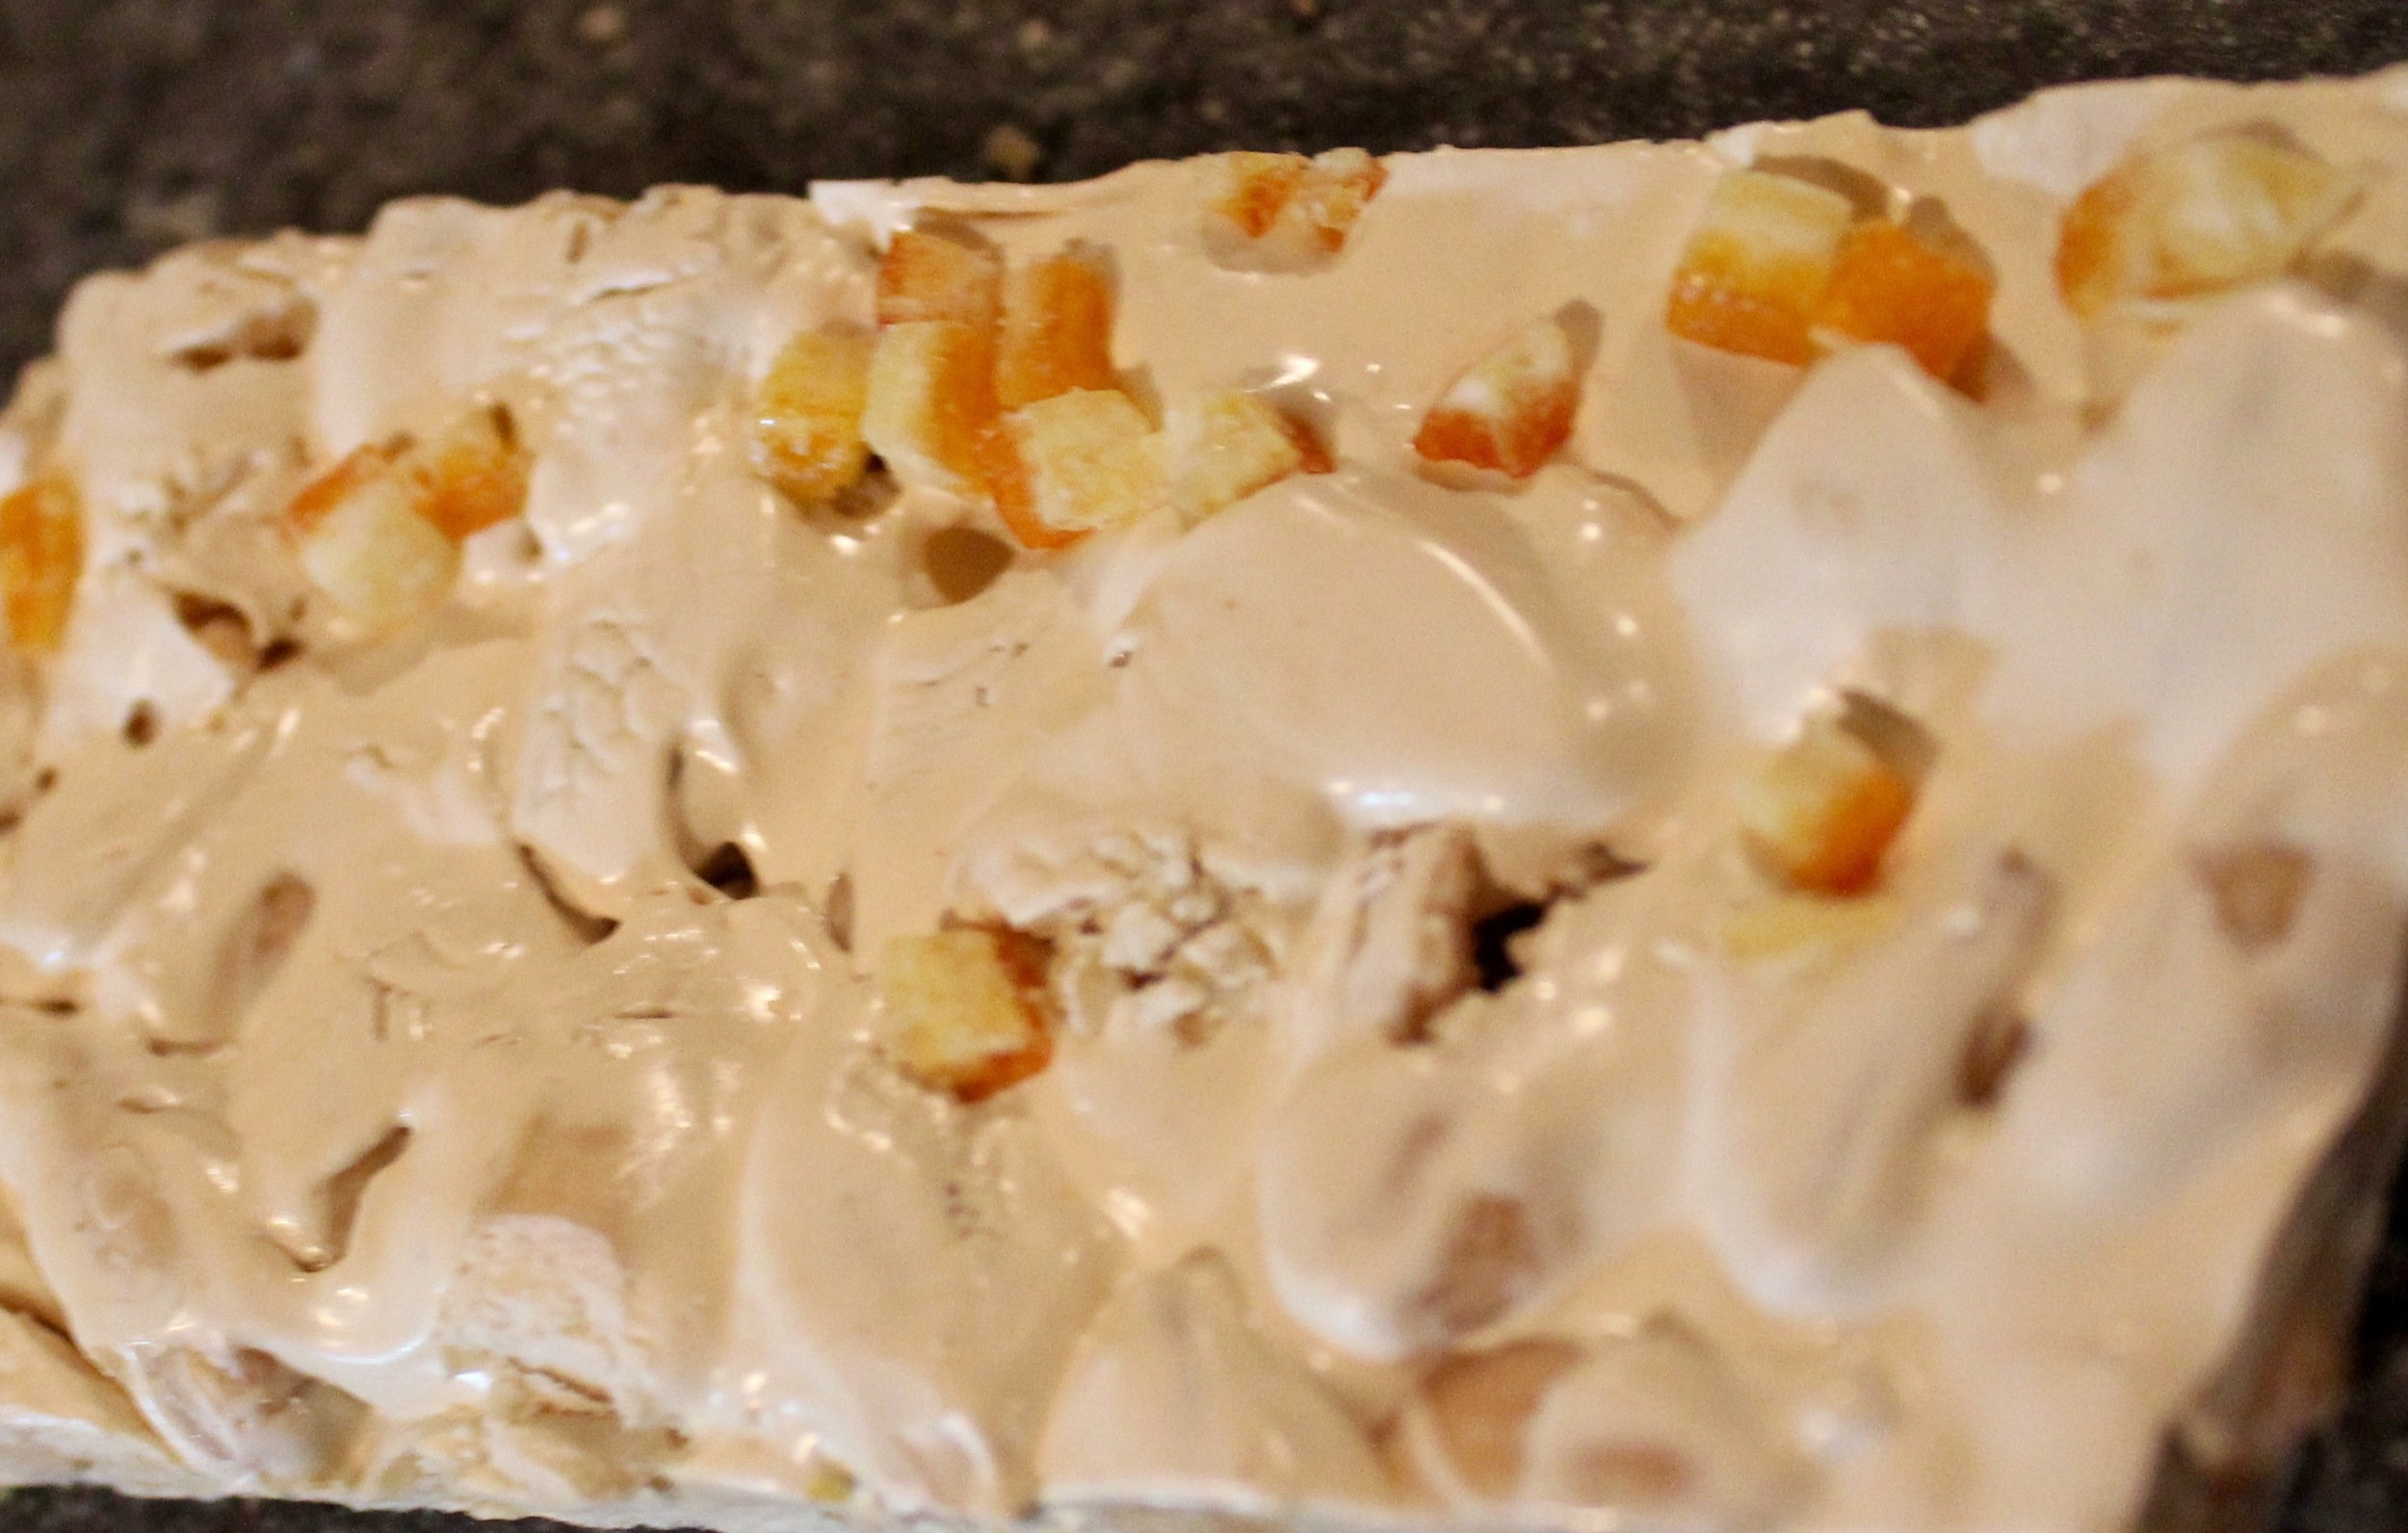 Nougat with Orange Peels and Marcona Almonds, with rice-paper backing